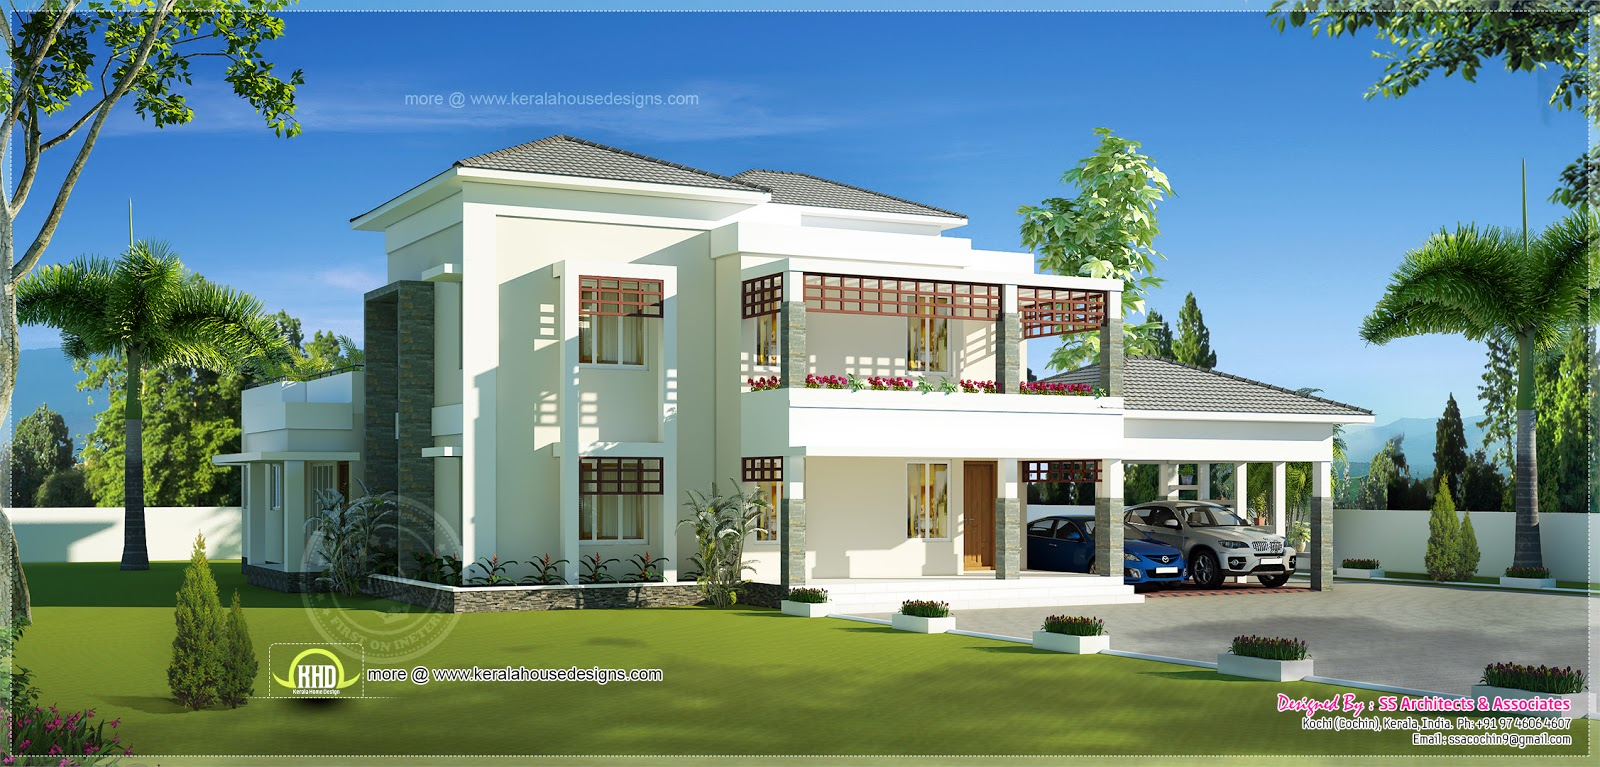 Middle class houses in africa for Best house designs for middle class